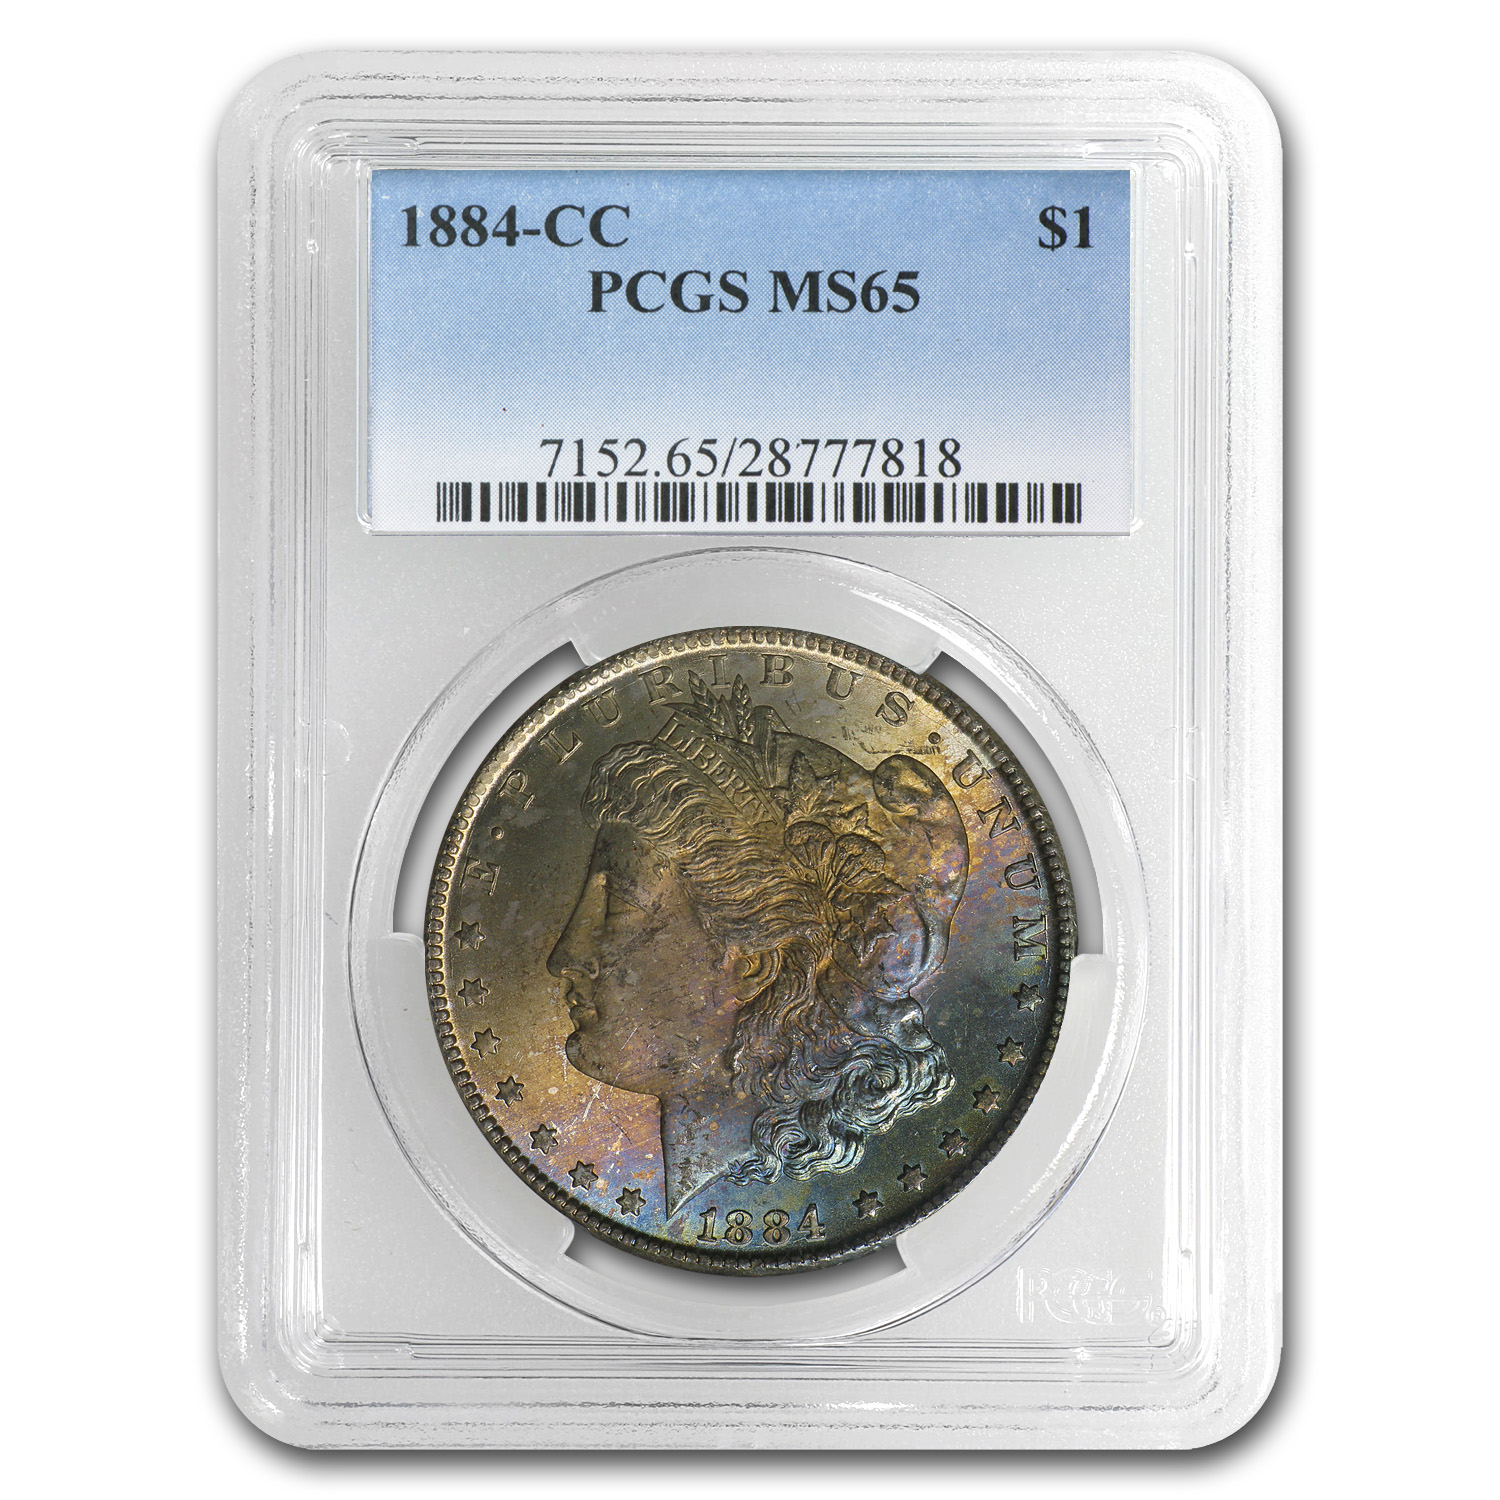 1884-CC Morgan Dollar MS-65 PCGS - Sunset Orange and Blue Obverse